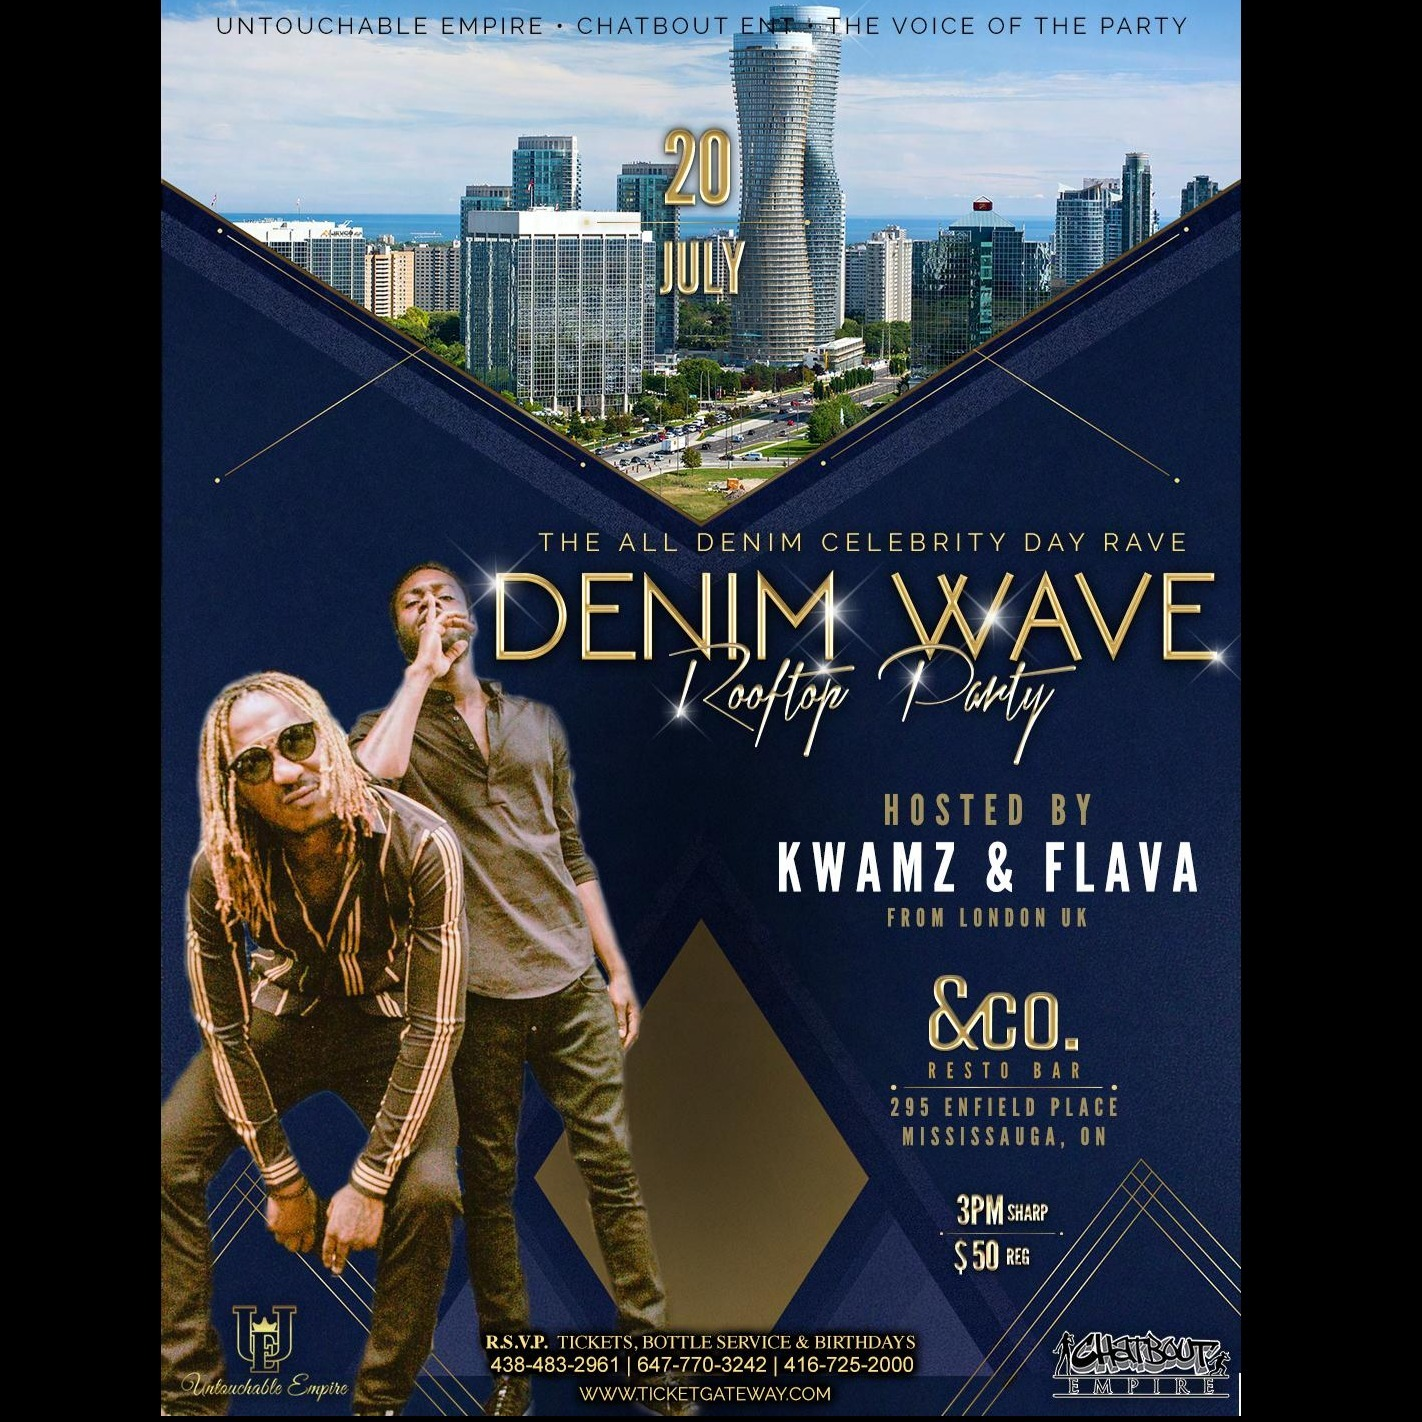 THE ALL DENIM CELEBRITY DAY RAVE ( DENIM WAVE )